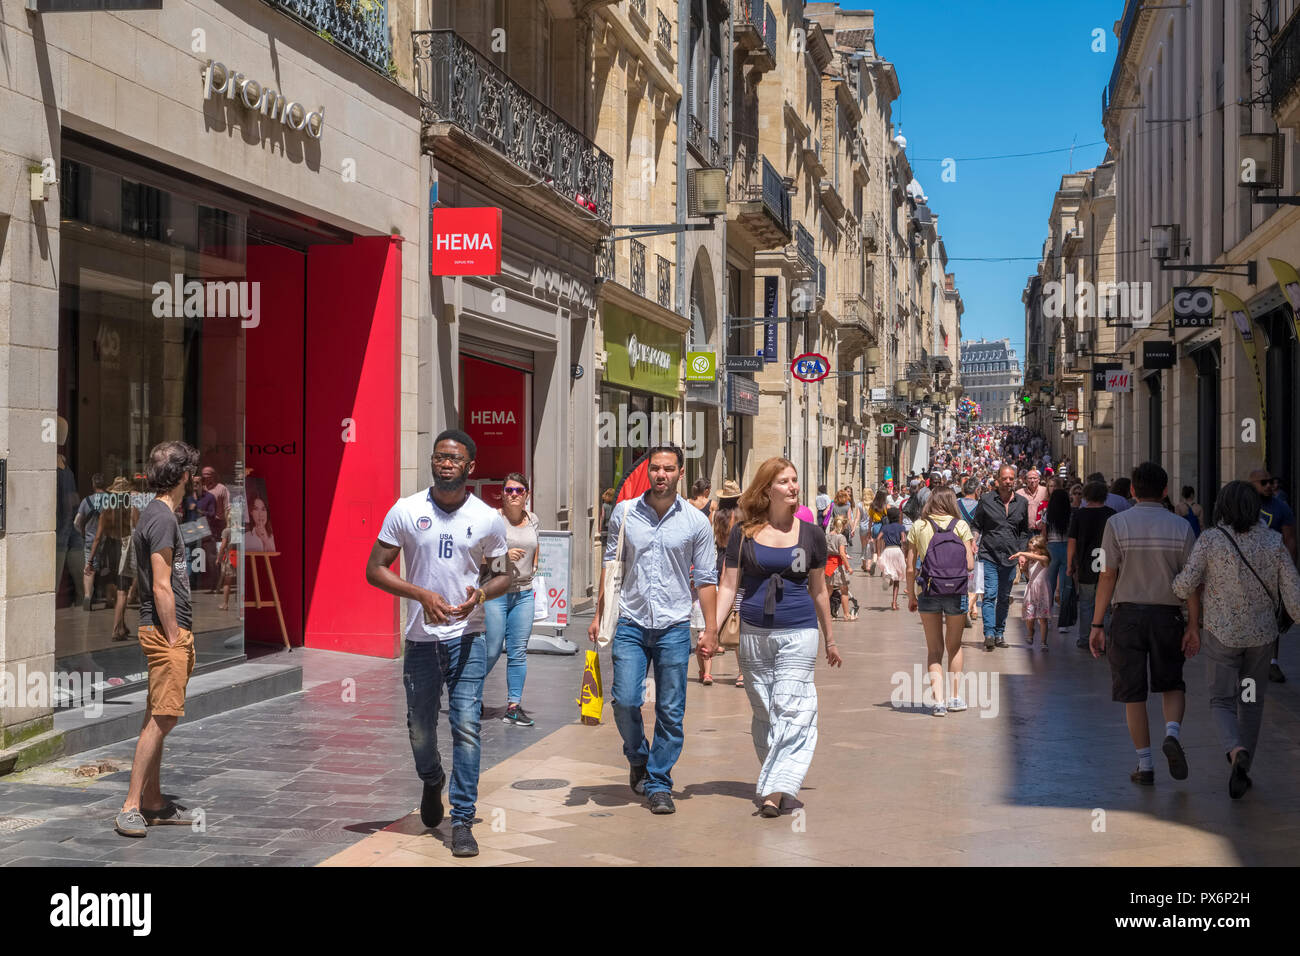 Rue St Catherine a shopping street in Bordeaux, France, Europe - Stock Image